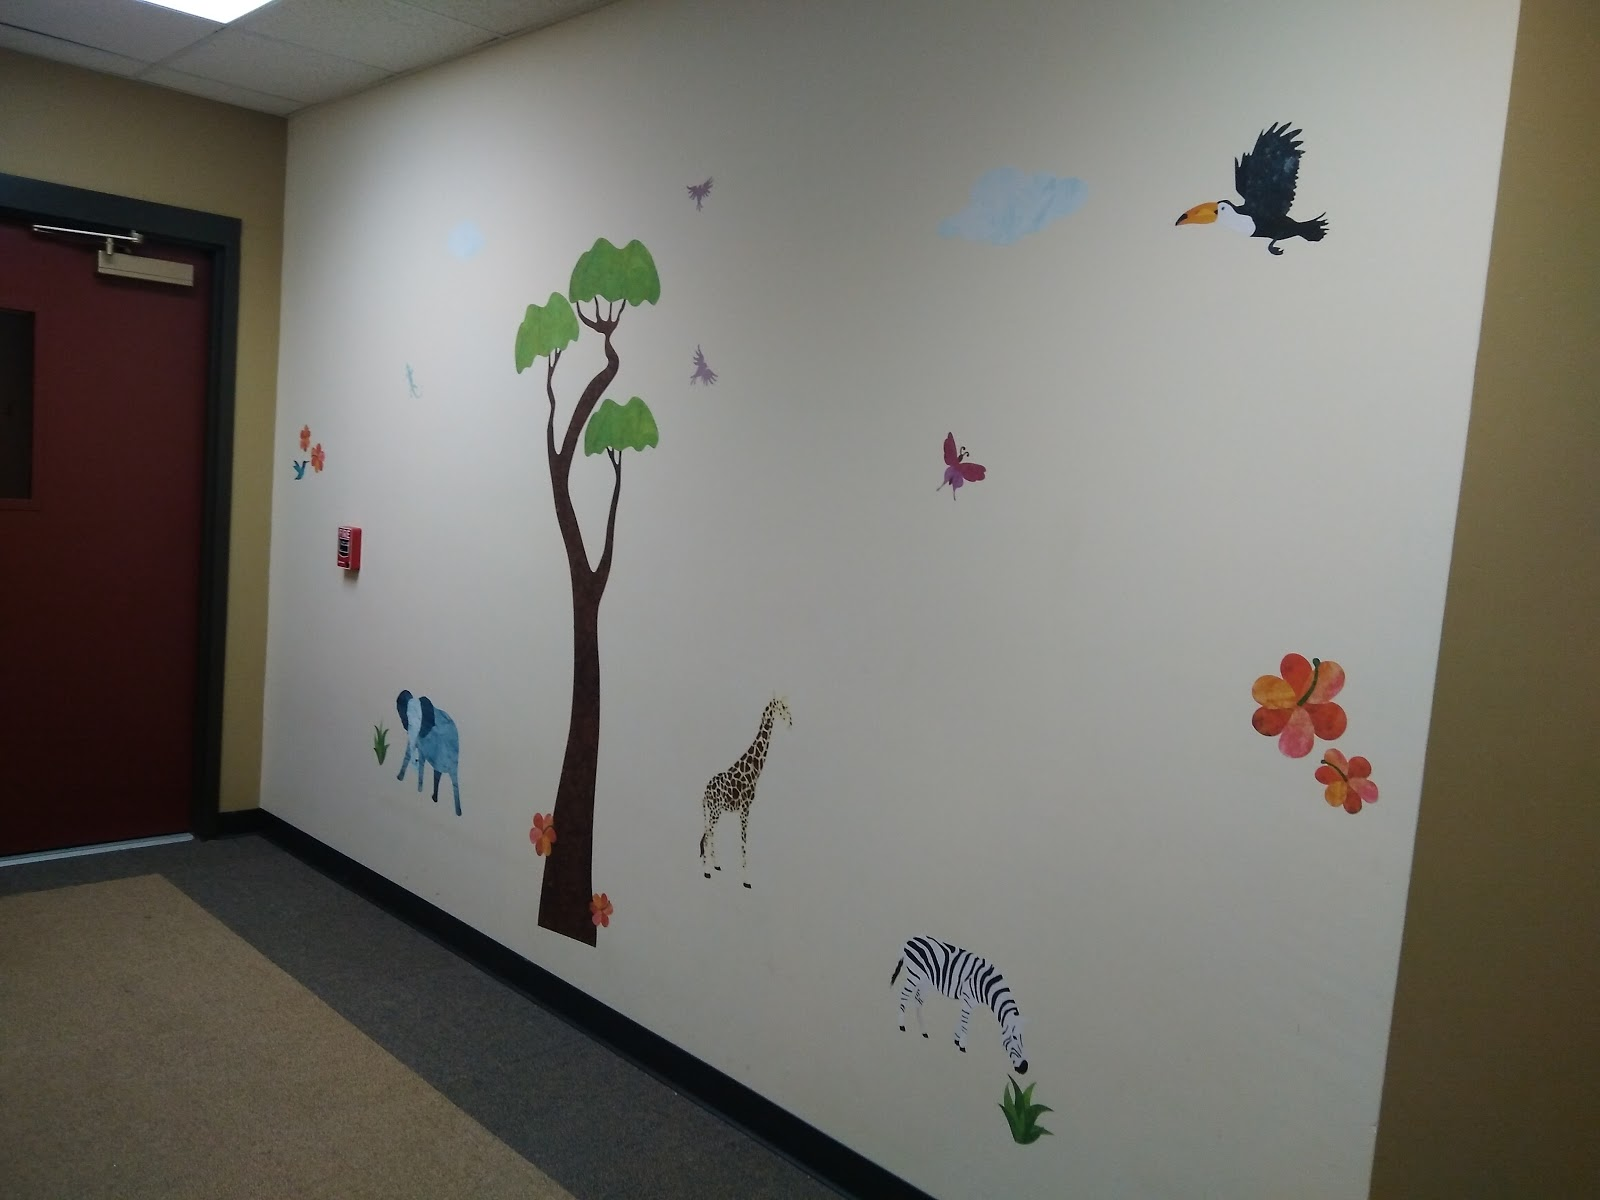 Make your walls fun again with mywndrfulwalls wall decals i was literally able to create a colorful and wild jungle safari for in minutes with these jungle wall stickers they were so easy to put up tear resistant amipublicfo Gallery